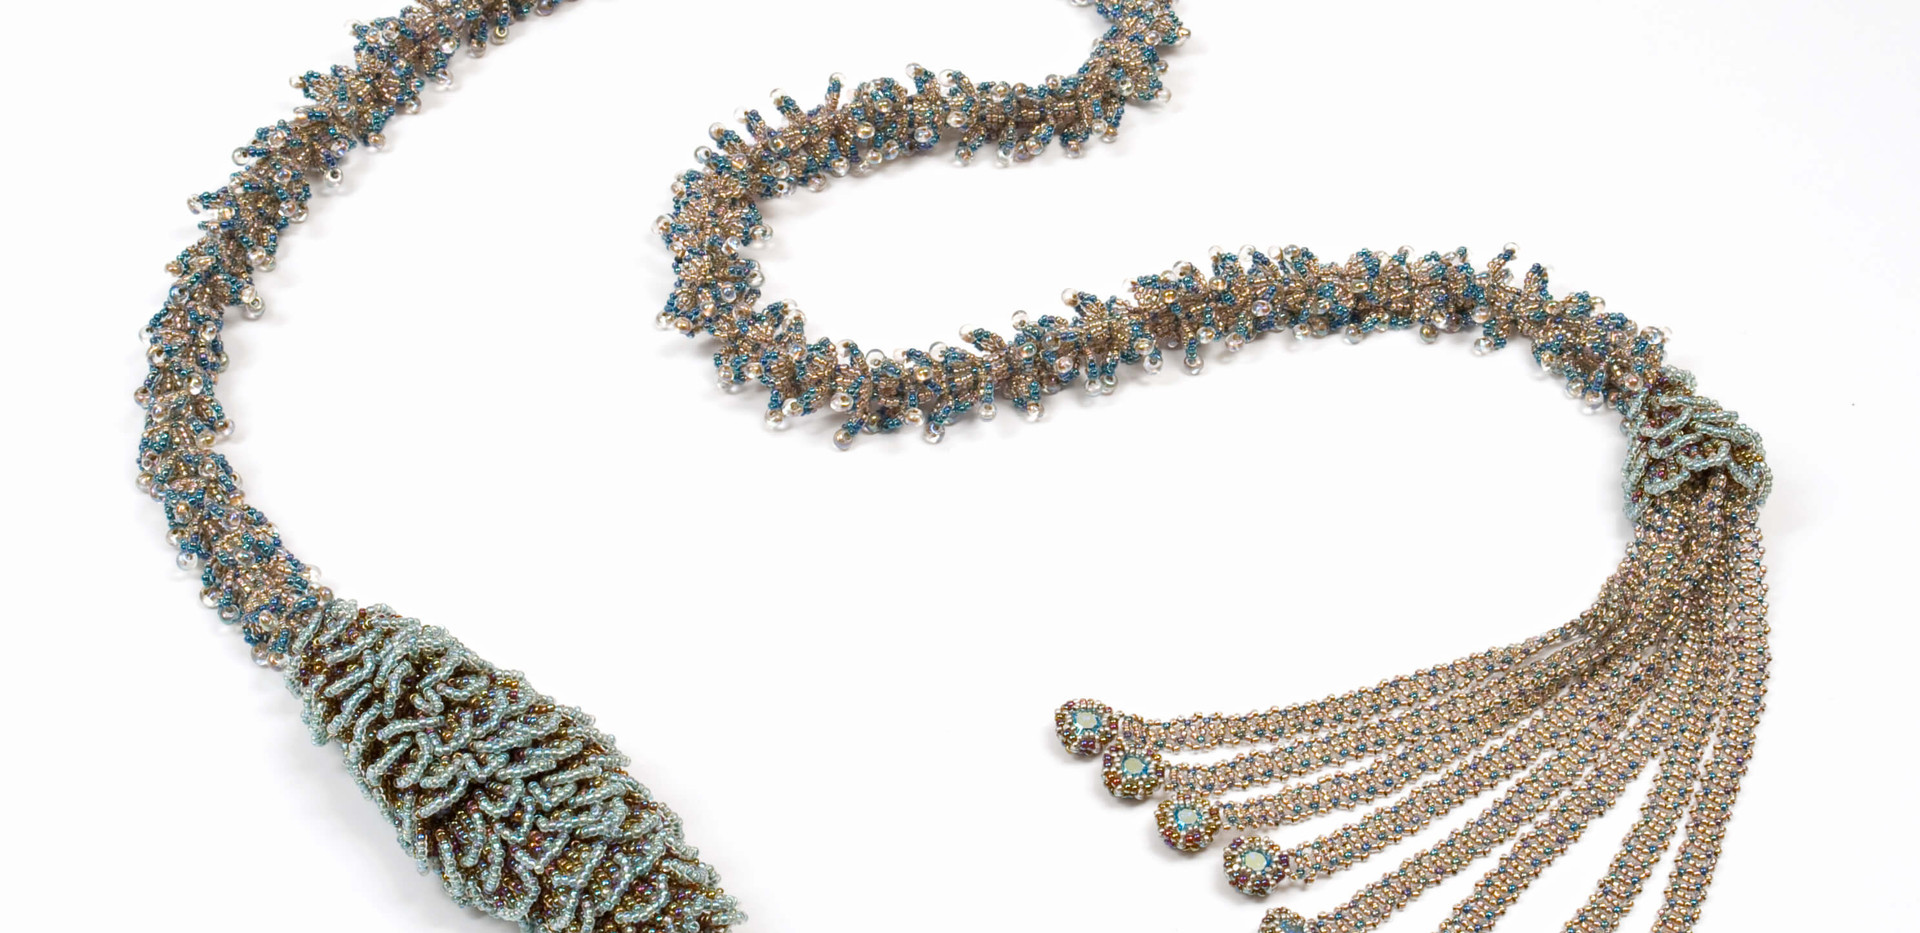 Pining Over You Lariat in Teal and Champagne